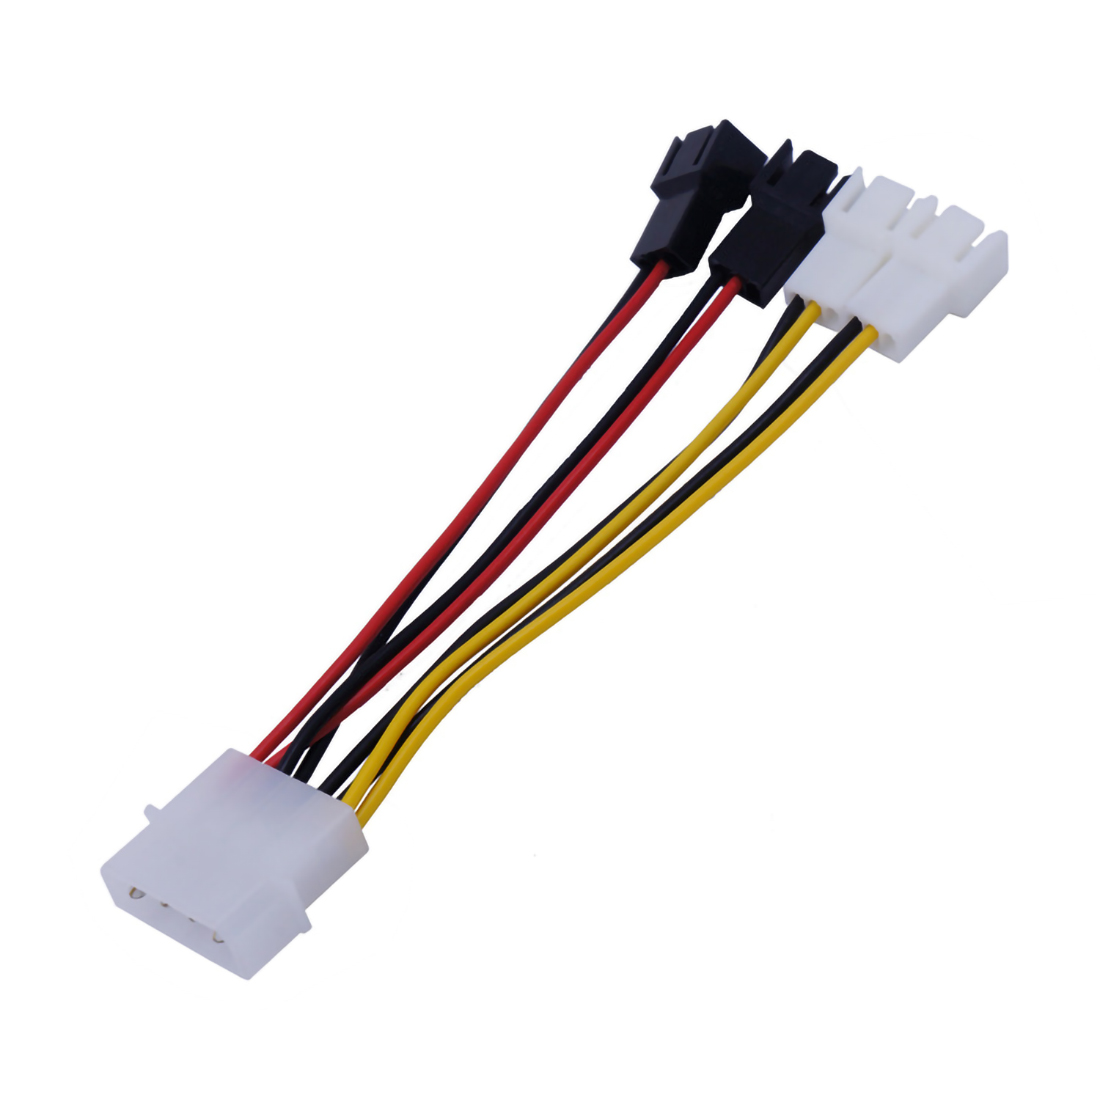 1Pc 4 Pin to 3 Pin Cooling Fan Power Cable Adapter Connector Line 12V*2 / 5V*2 Computer Fan Cables Cord for CPU PC Case 12.5cm image